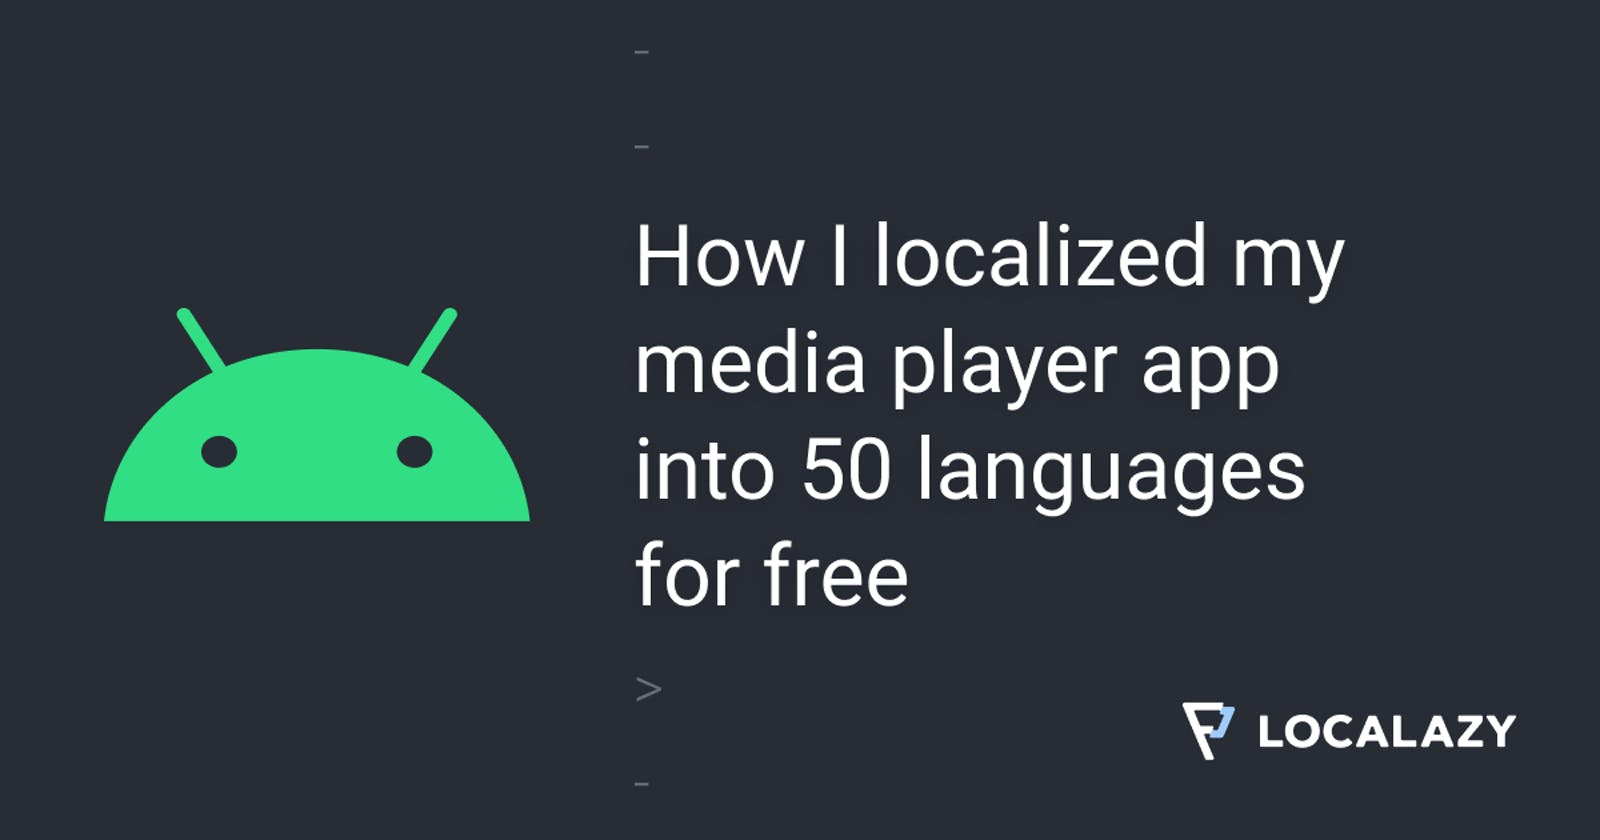 How I localized my media player app into 50 languages for free